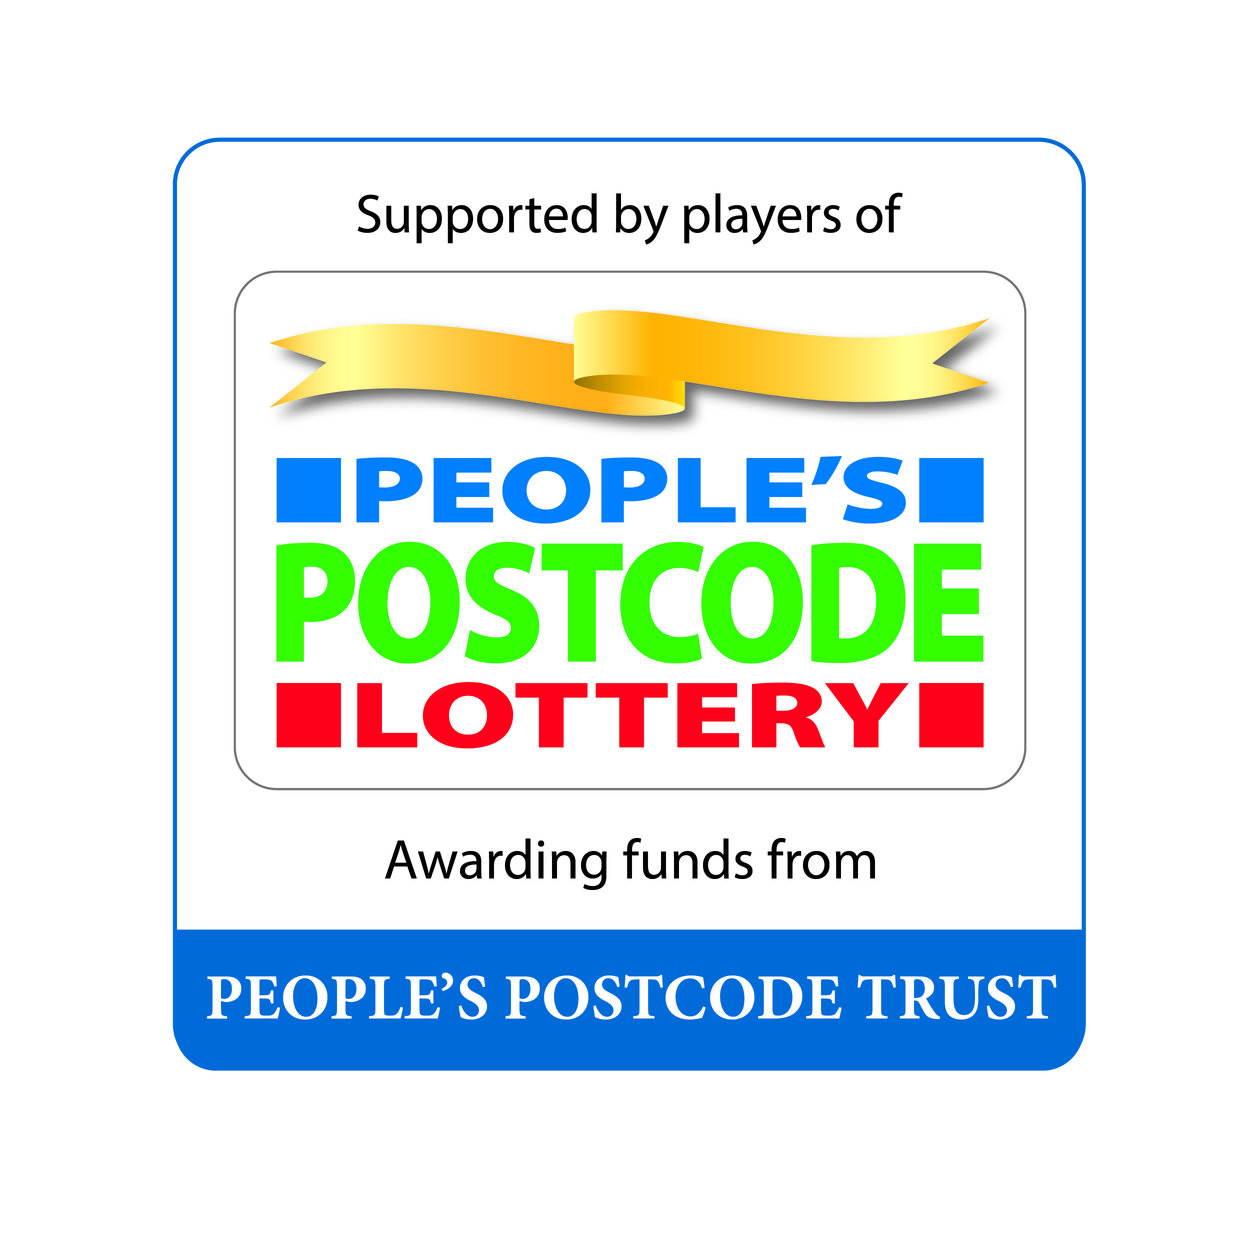 PeoplesPostcode-logo